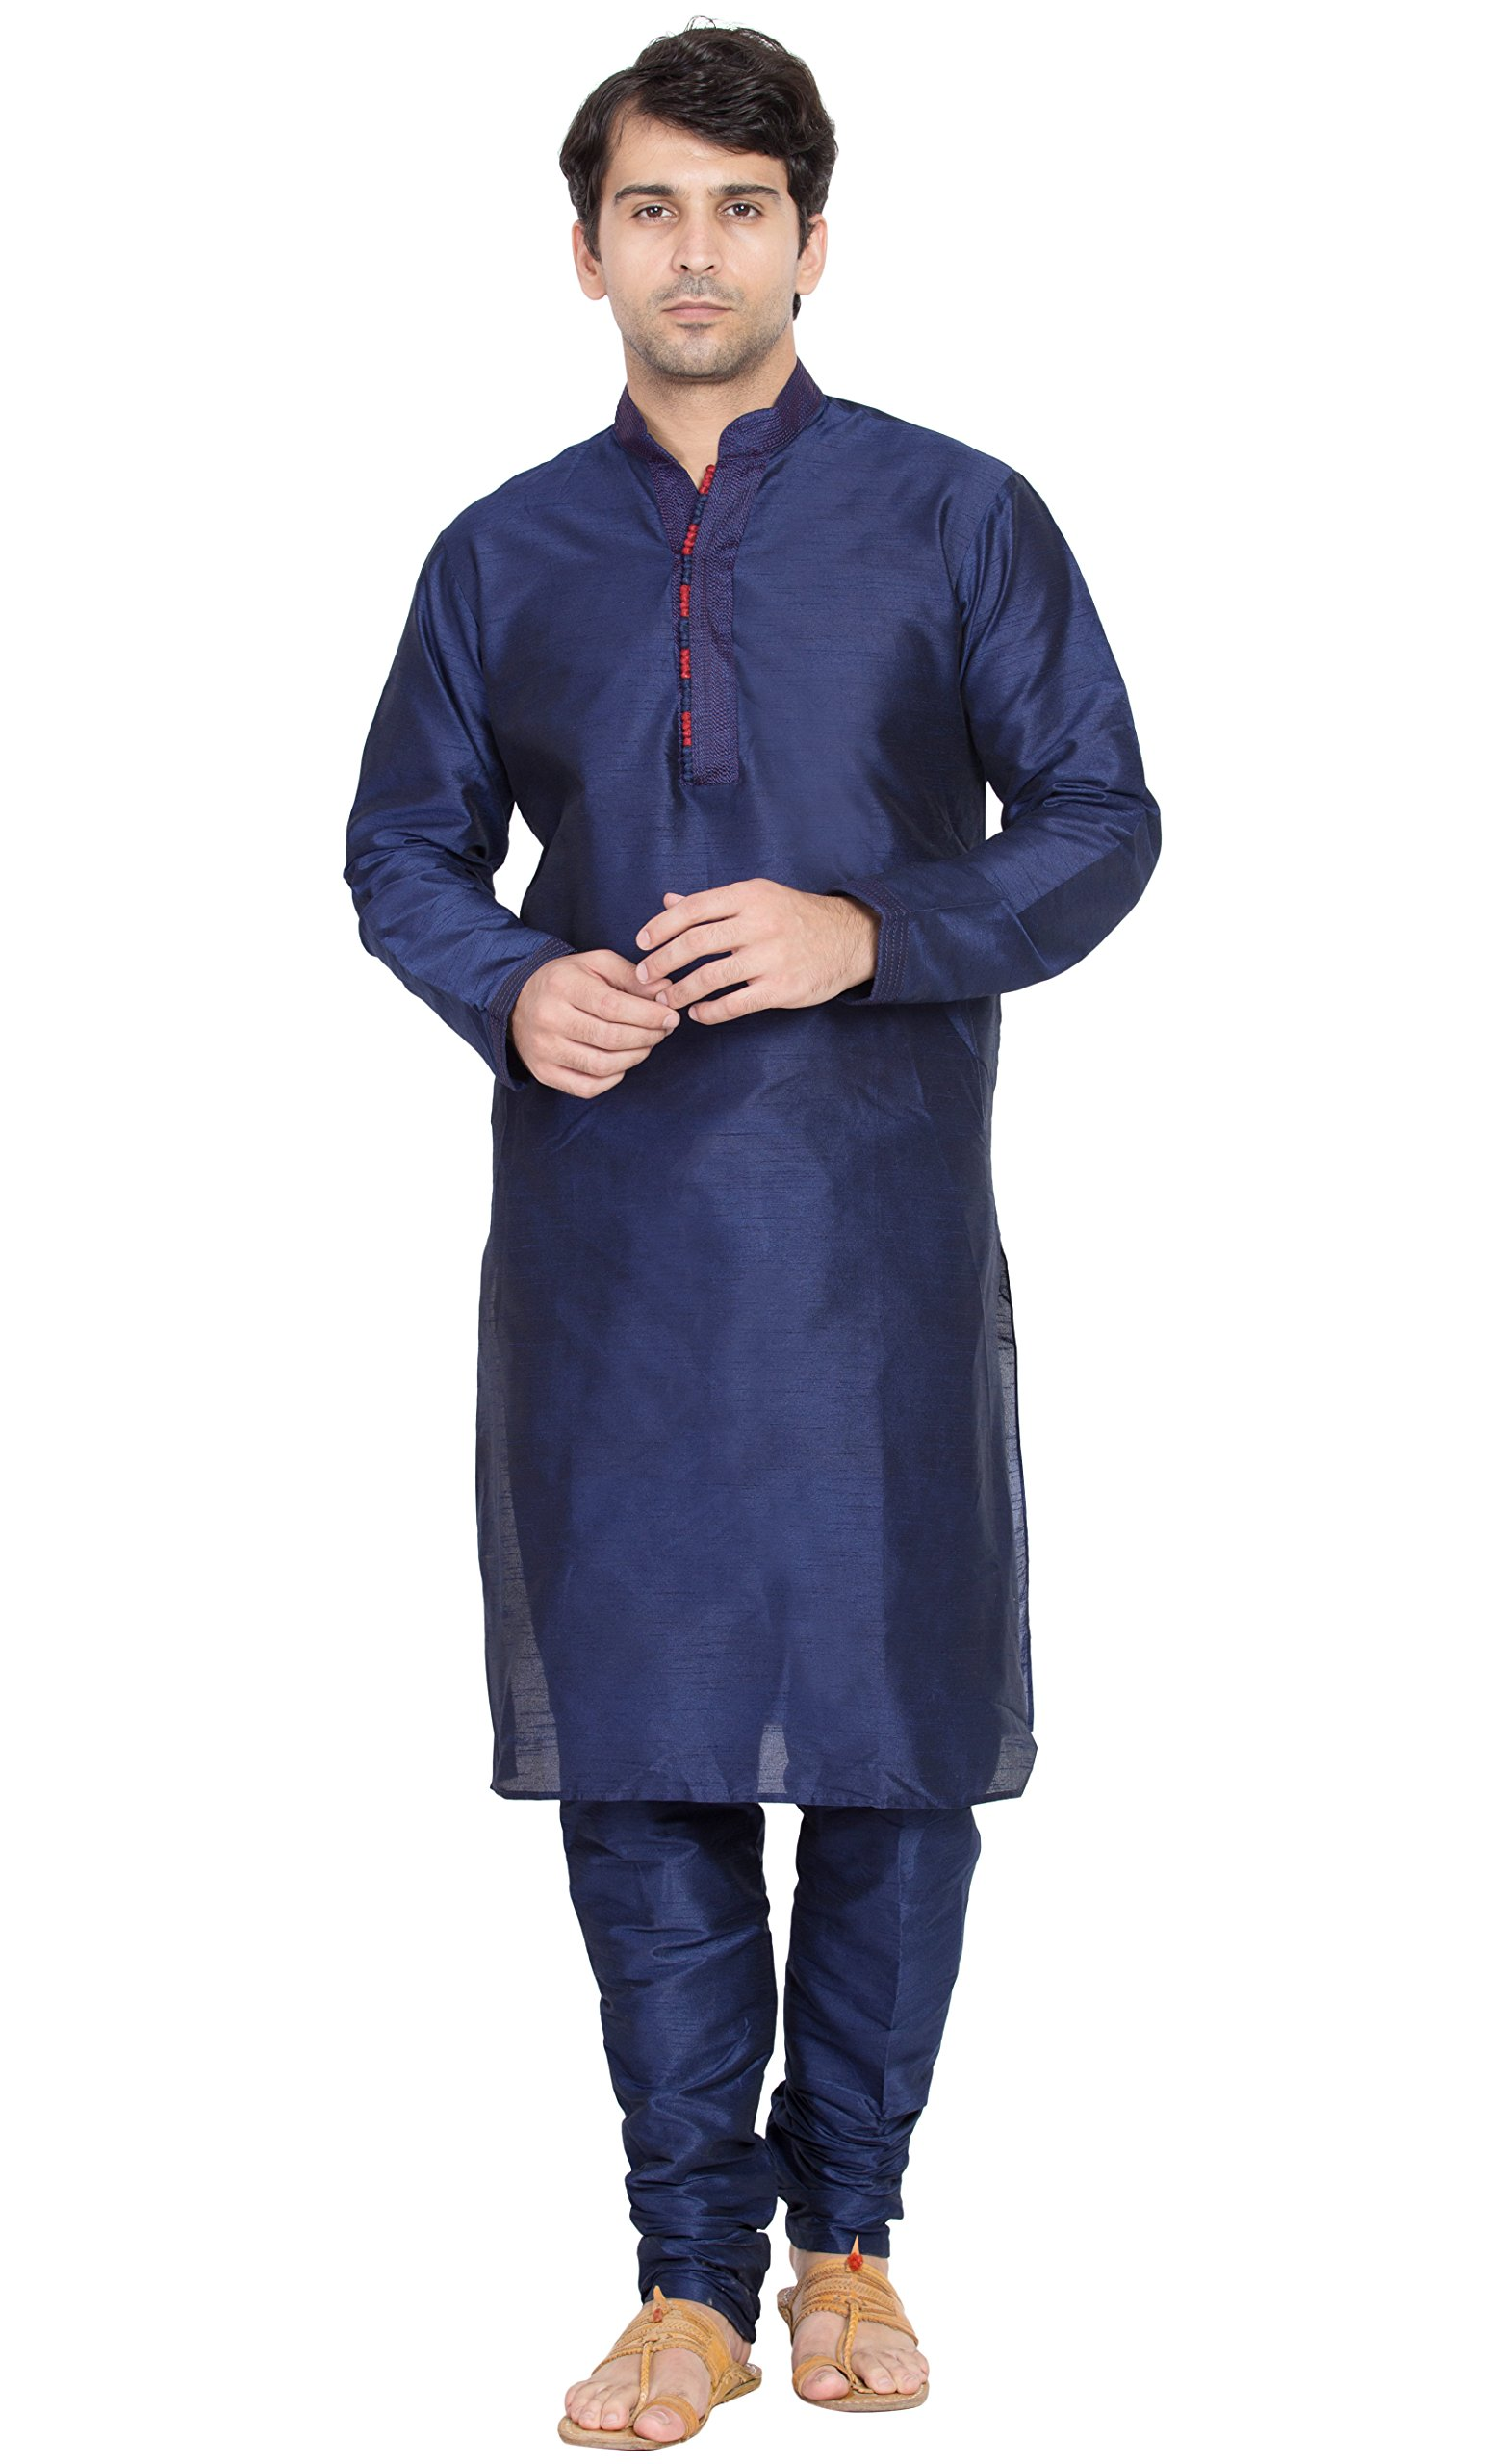 Kurta Pajama India Wear Men Salwar Kameez Party Wear Wedding Long Sleeve Dress -XL by SKAVIJ